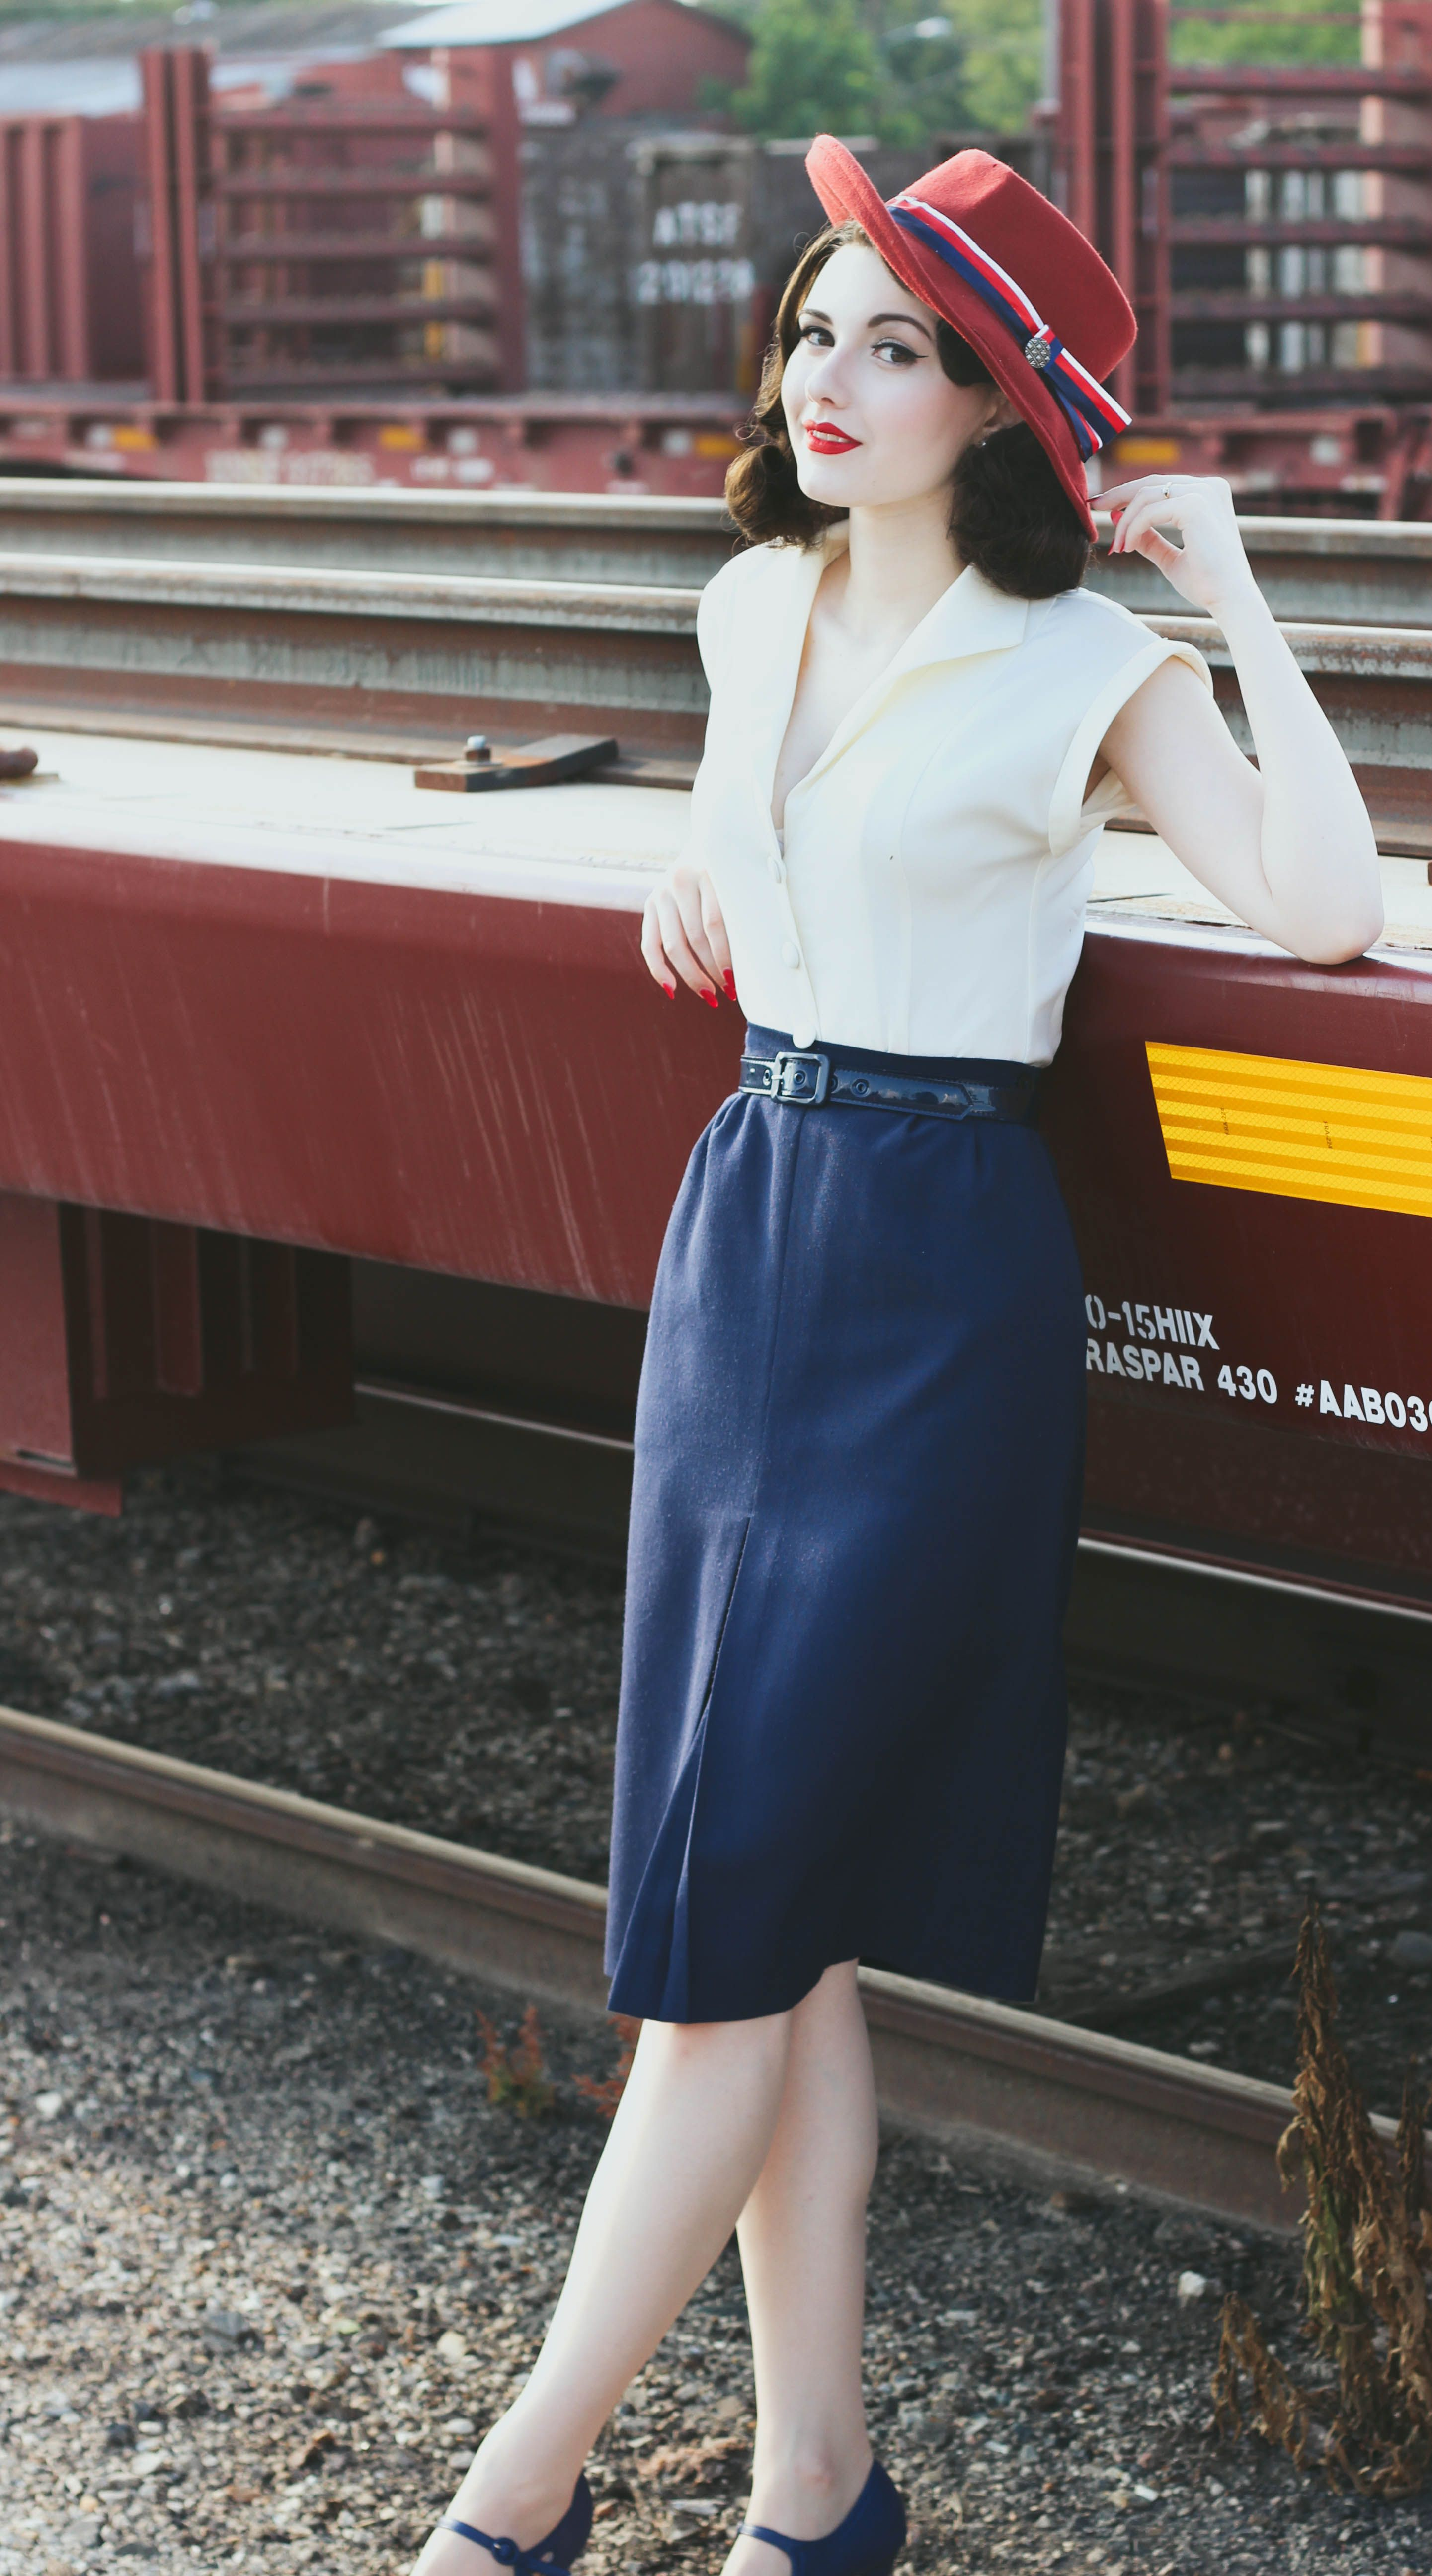 madison steward agentcarter cosplay top from unique